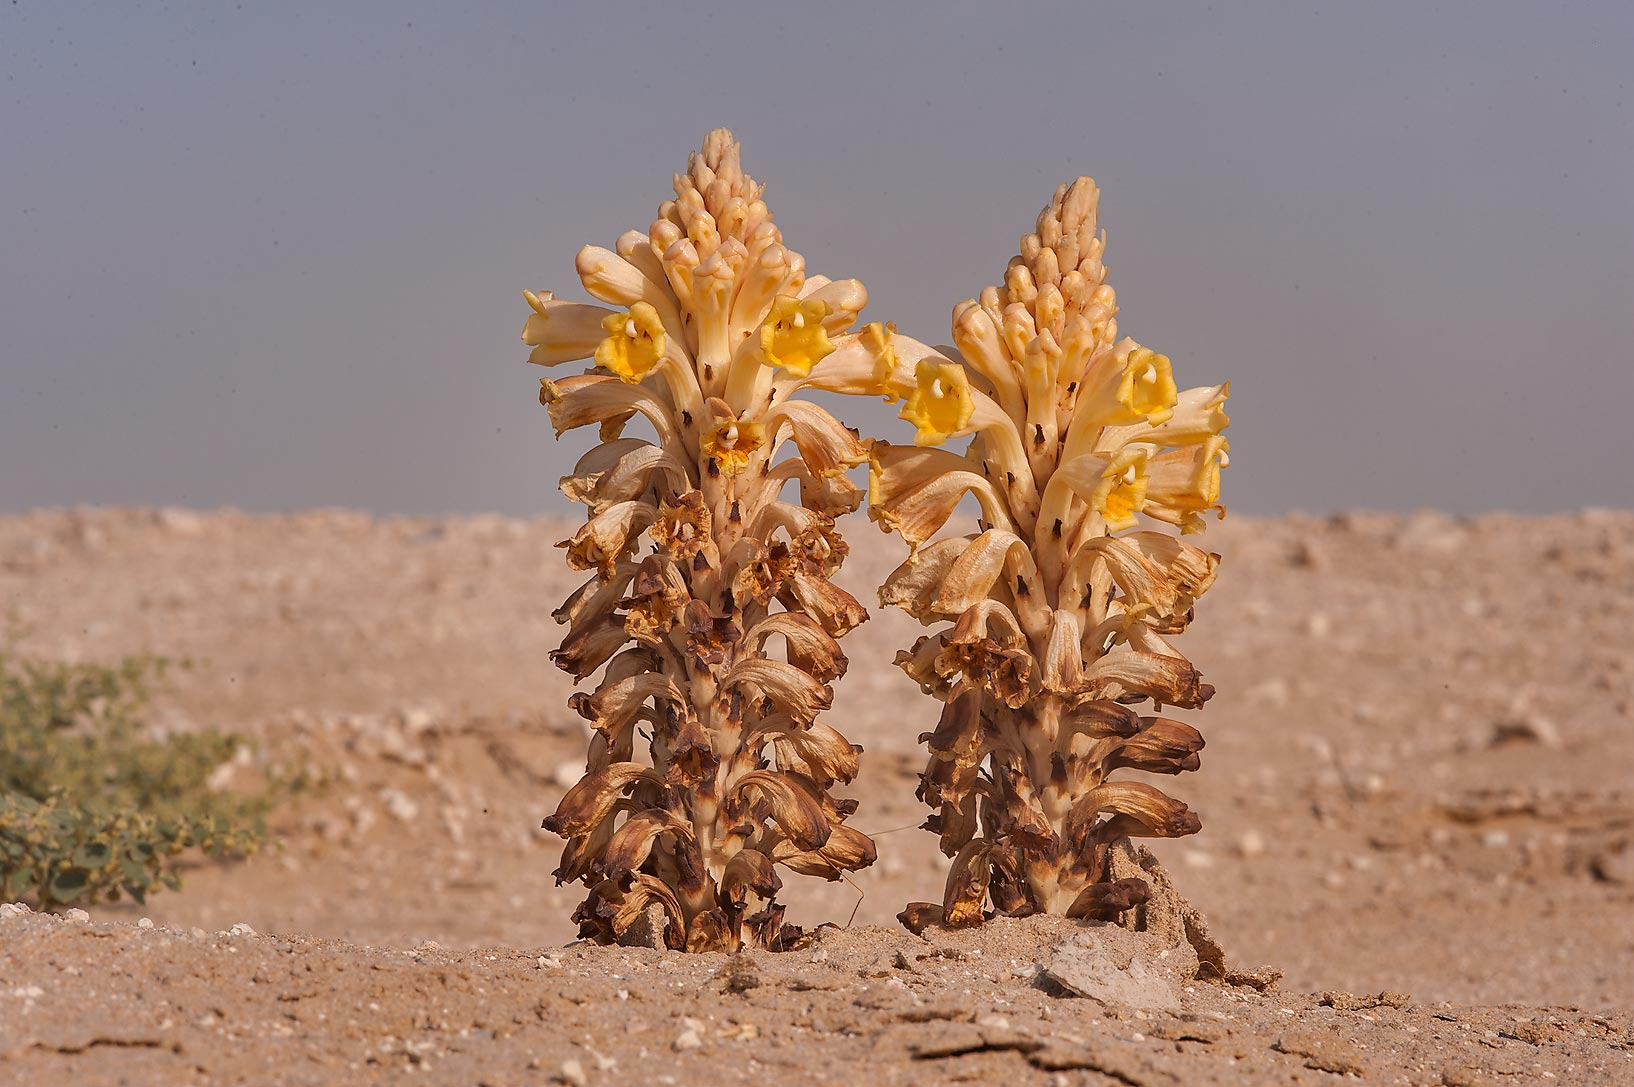 Parasitic plant Desert Hyacinth (Cistanche...on a roadside near Abu Nahlah. Qatar